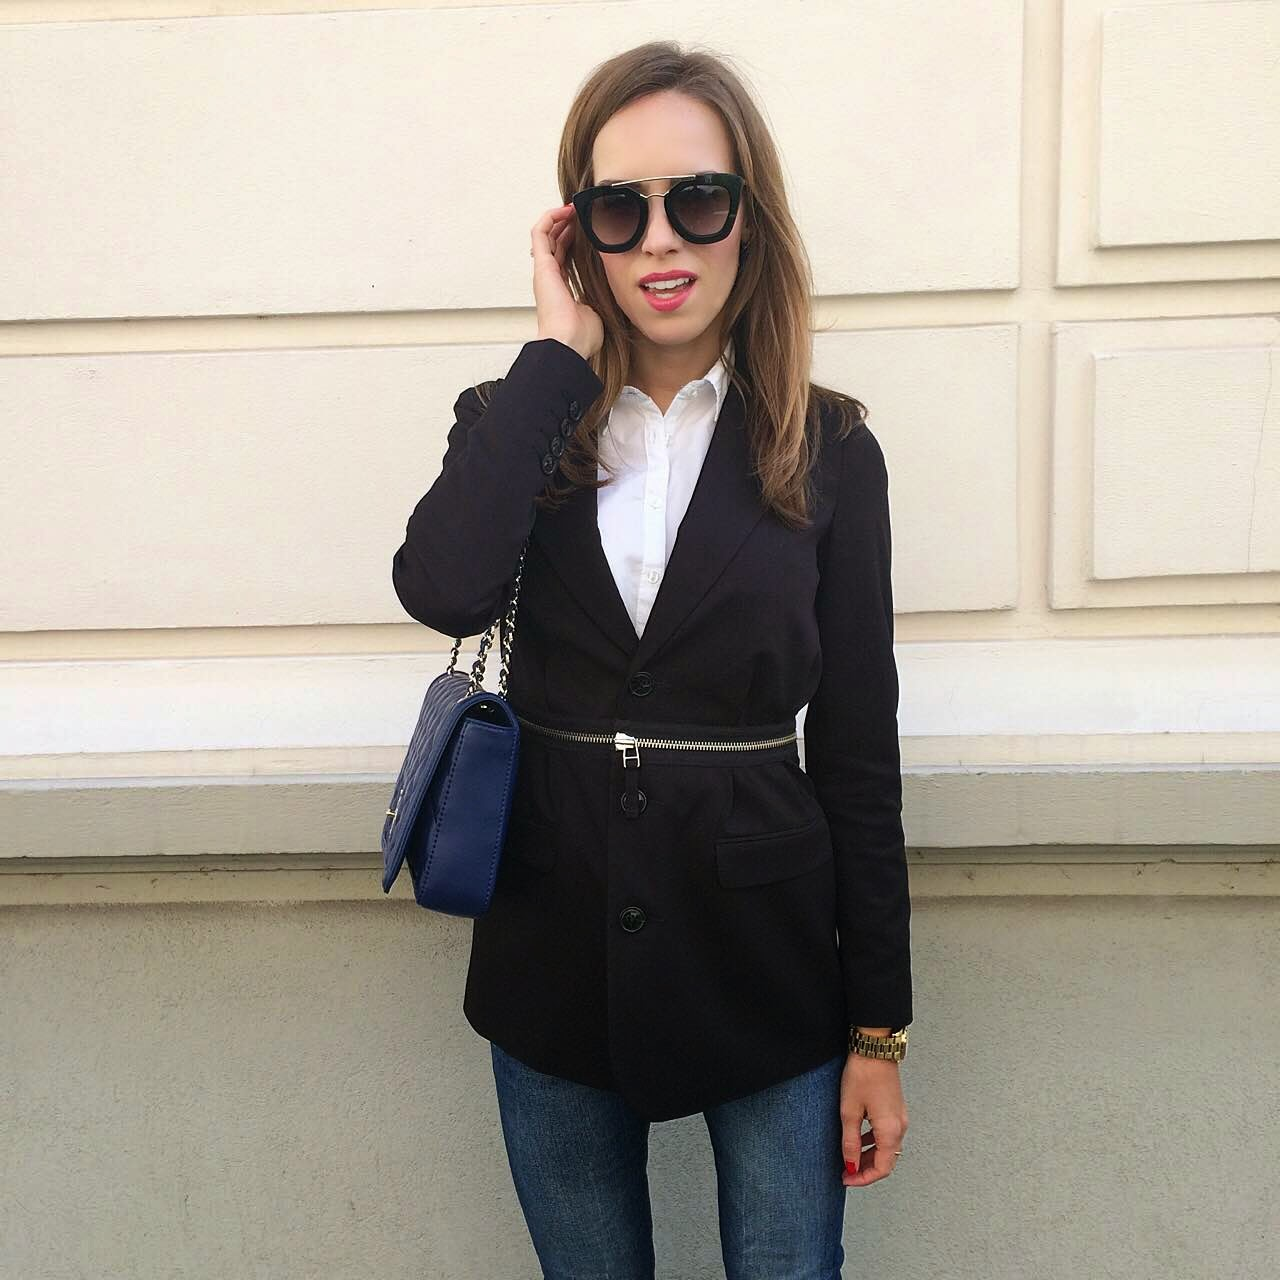 kristjaana mere instagram business causal outfit munich